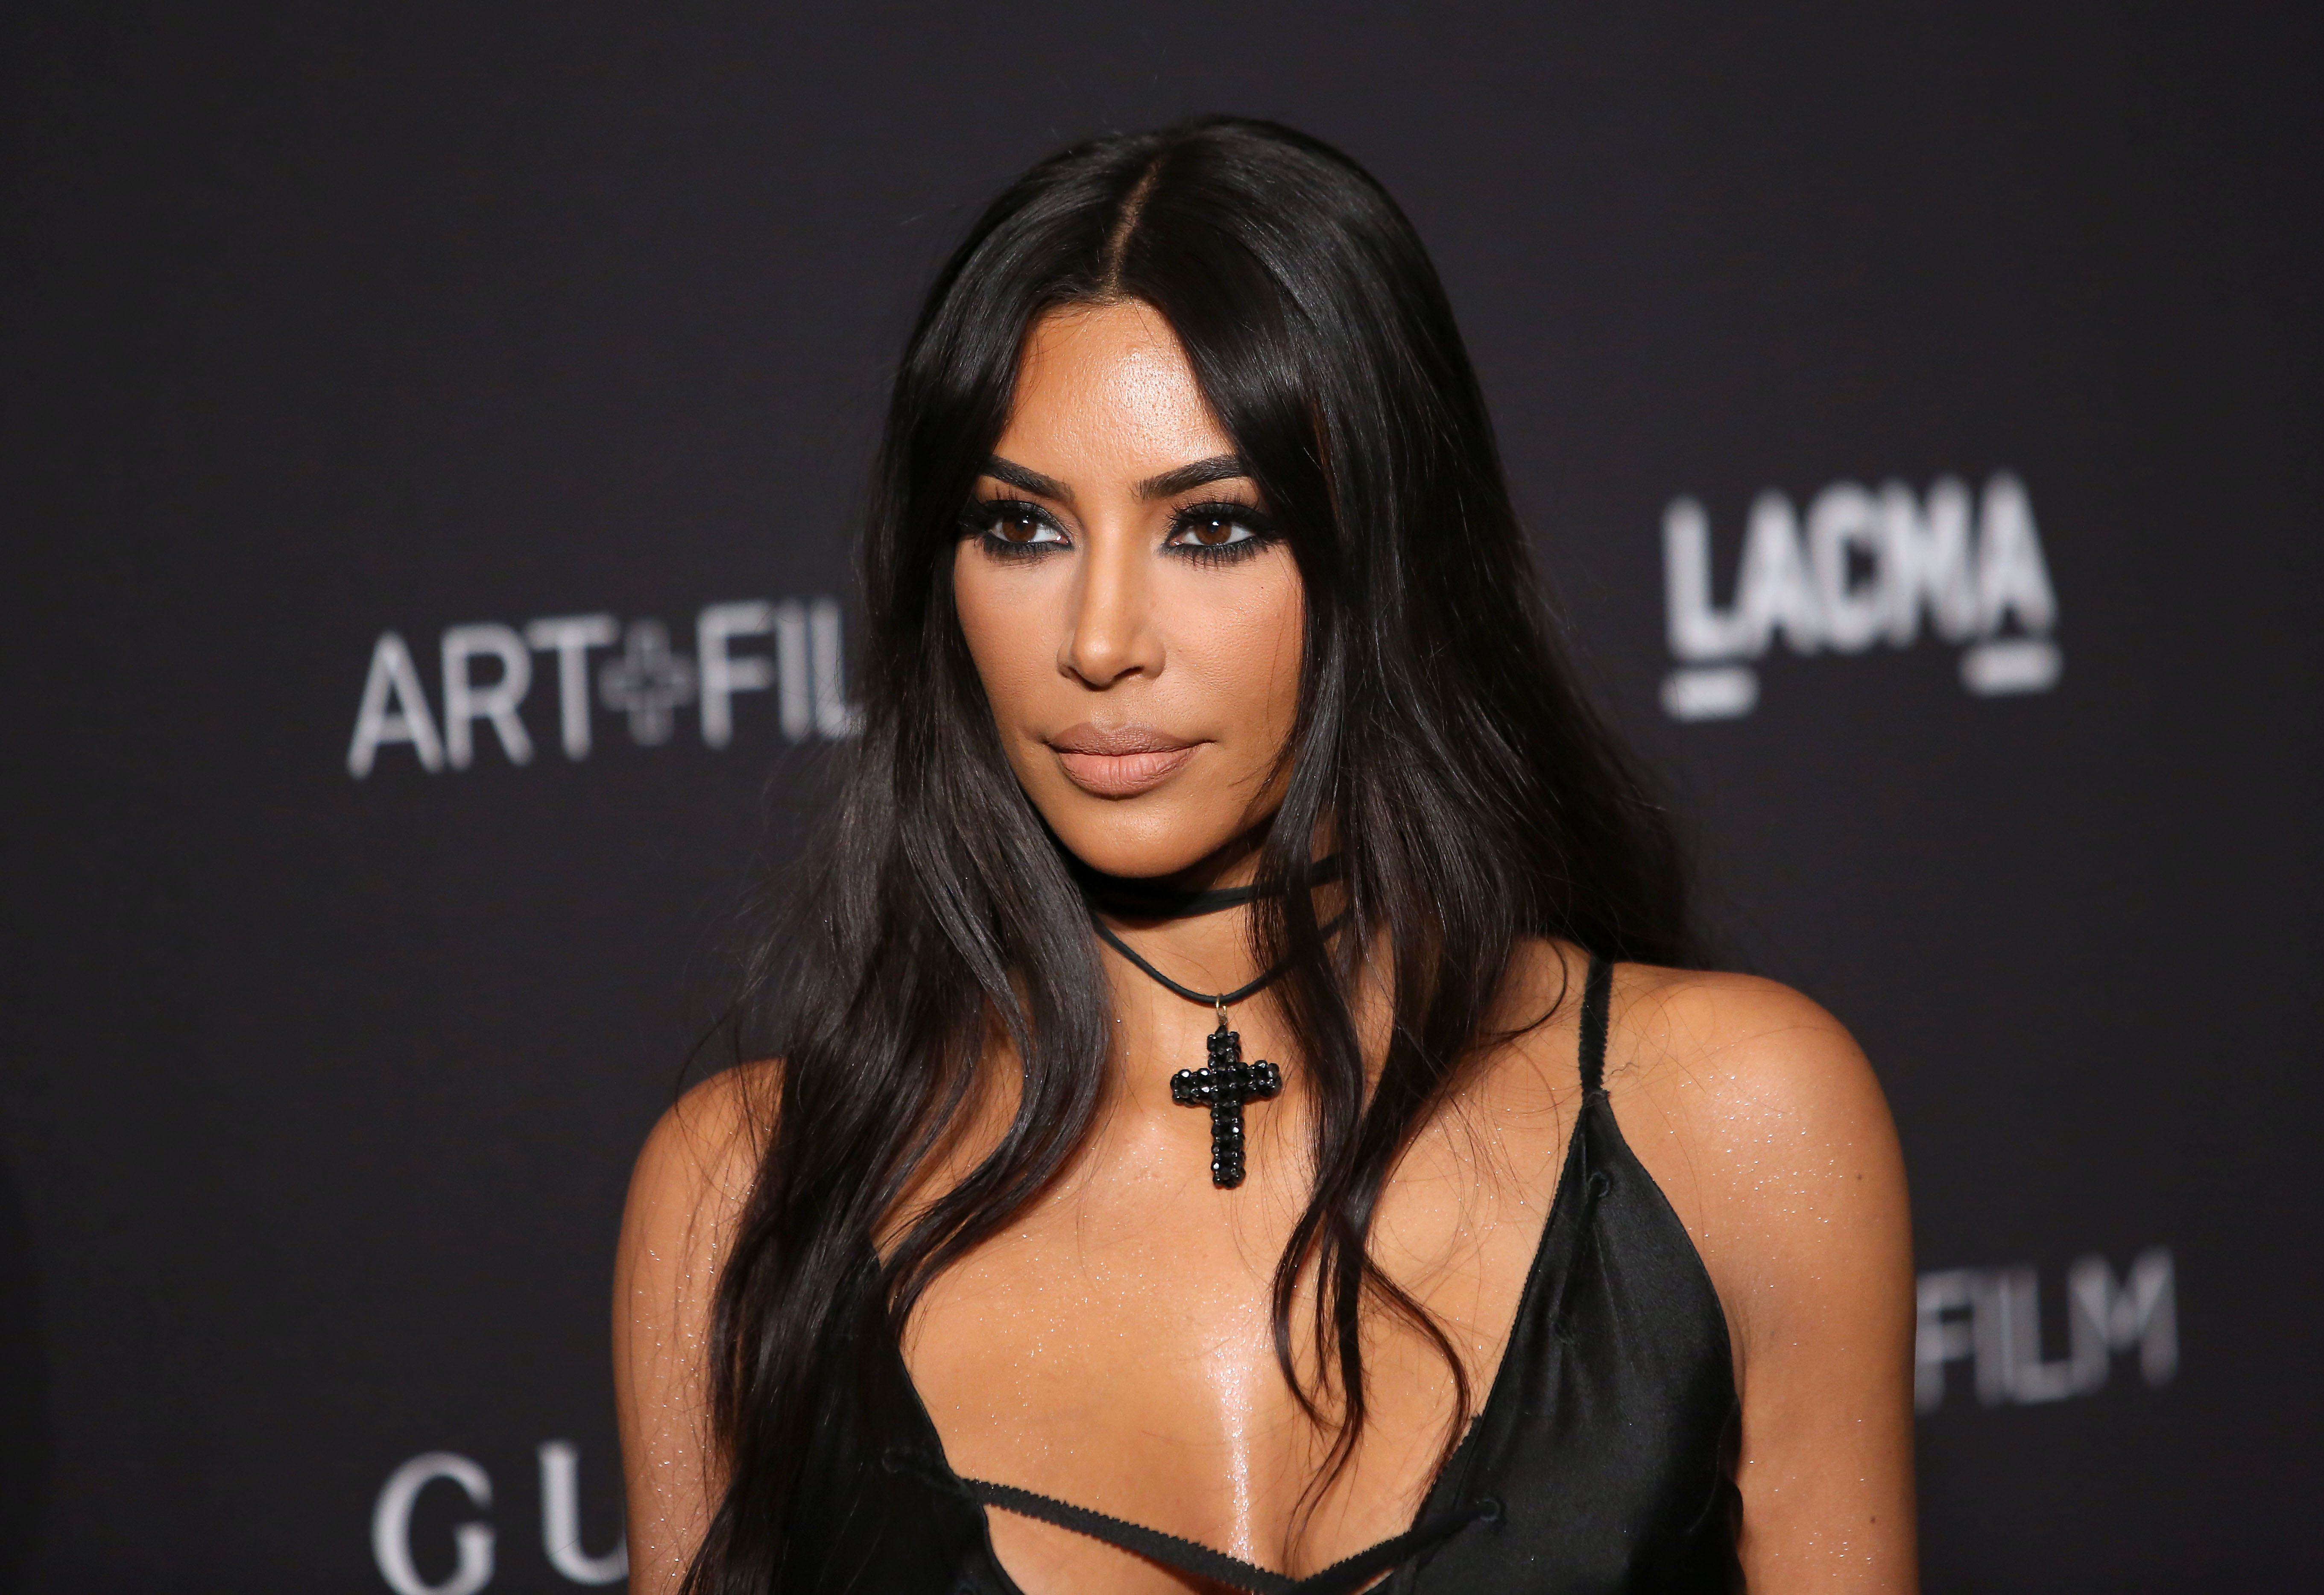 Kim Kardashian attends the LACMA Art + Film Gala at LACMA on November 03, 2018 in Los Angeles, California | Photo: Getty Images